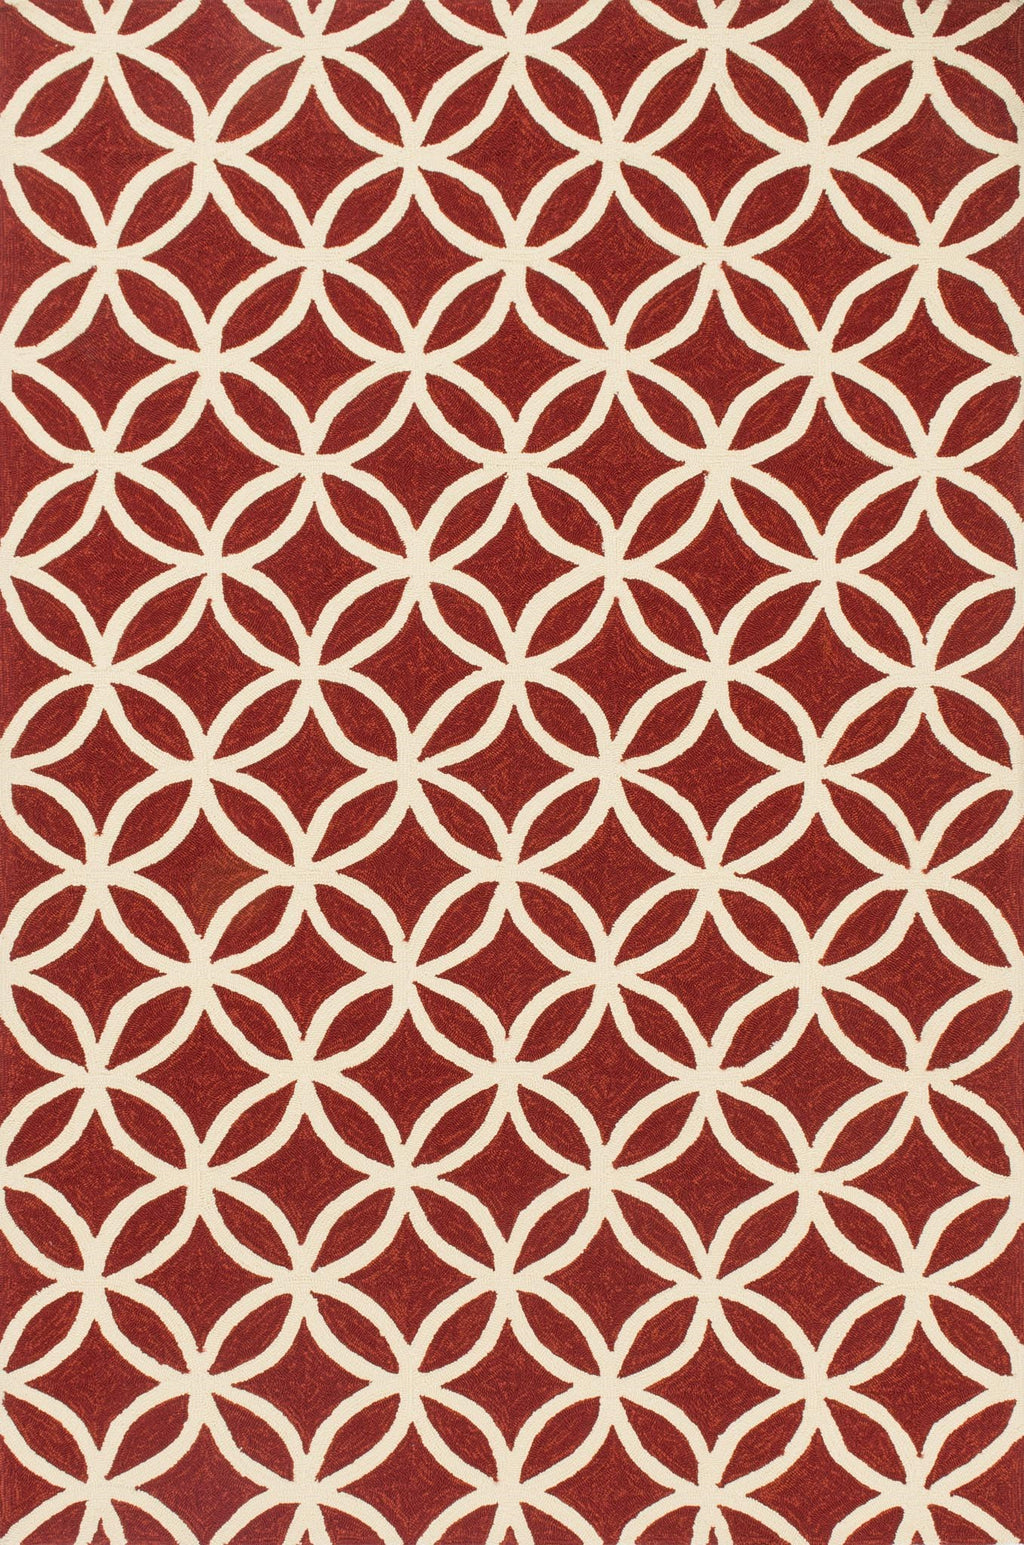 VENICE BEACH Collection Rug  in  RED / IVORY Red Small Hand-Hooked Polypropylene